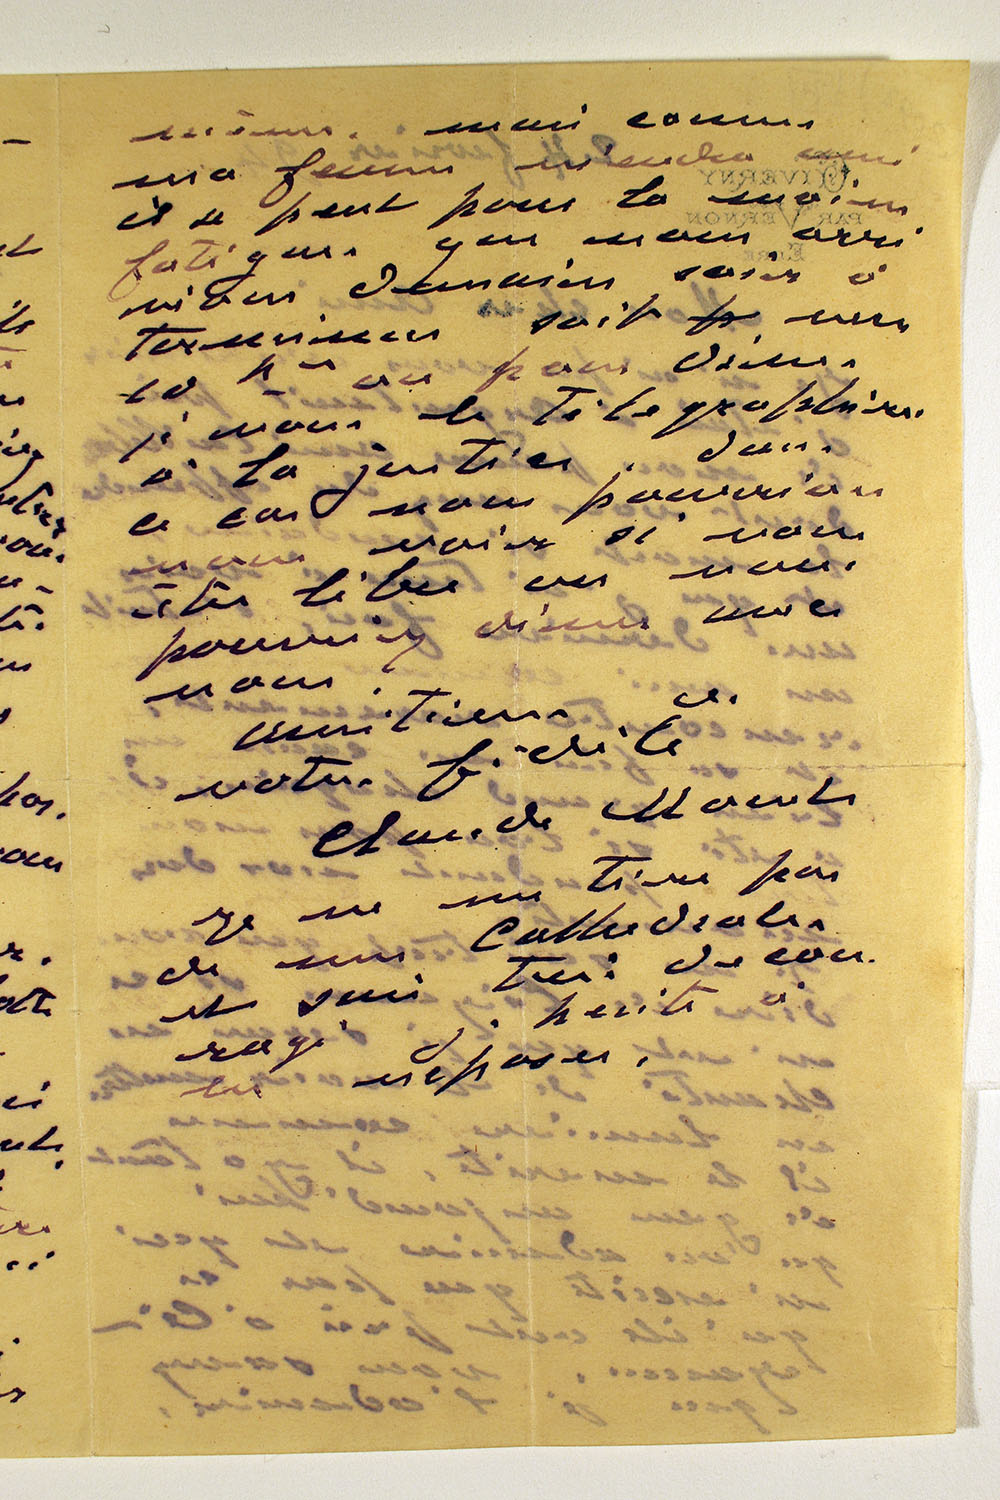 Page four of letter from Claude Monet to unknown recipient, February 24, 1894